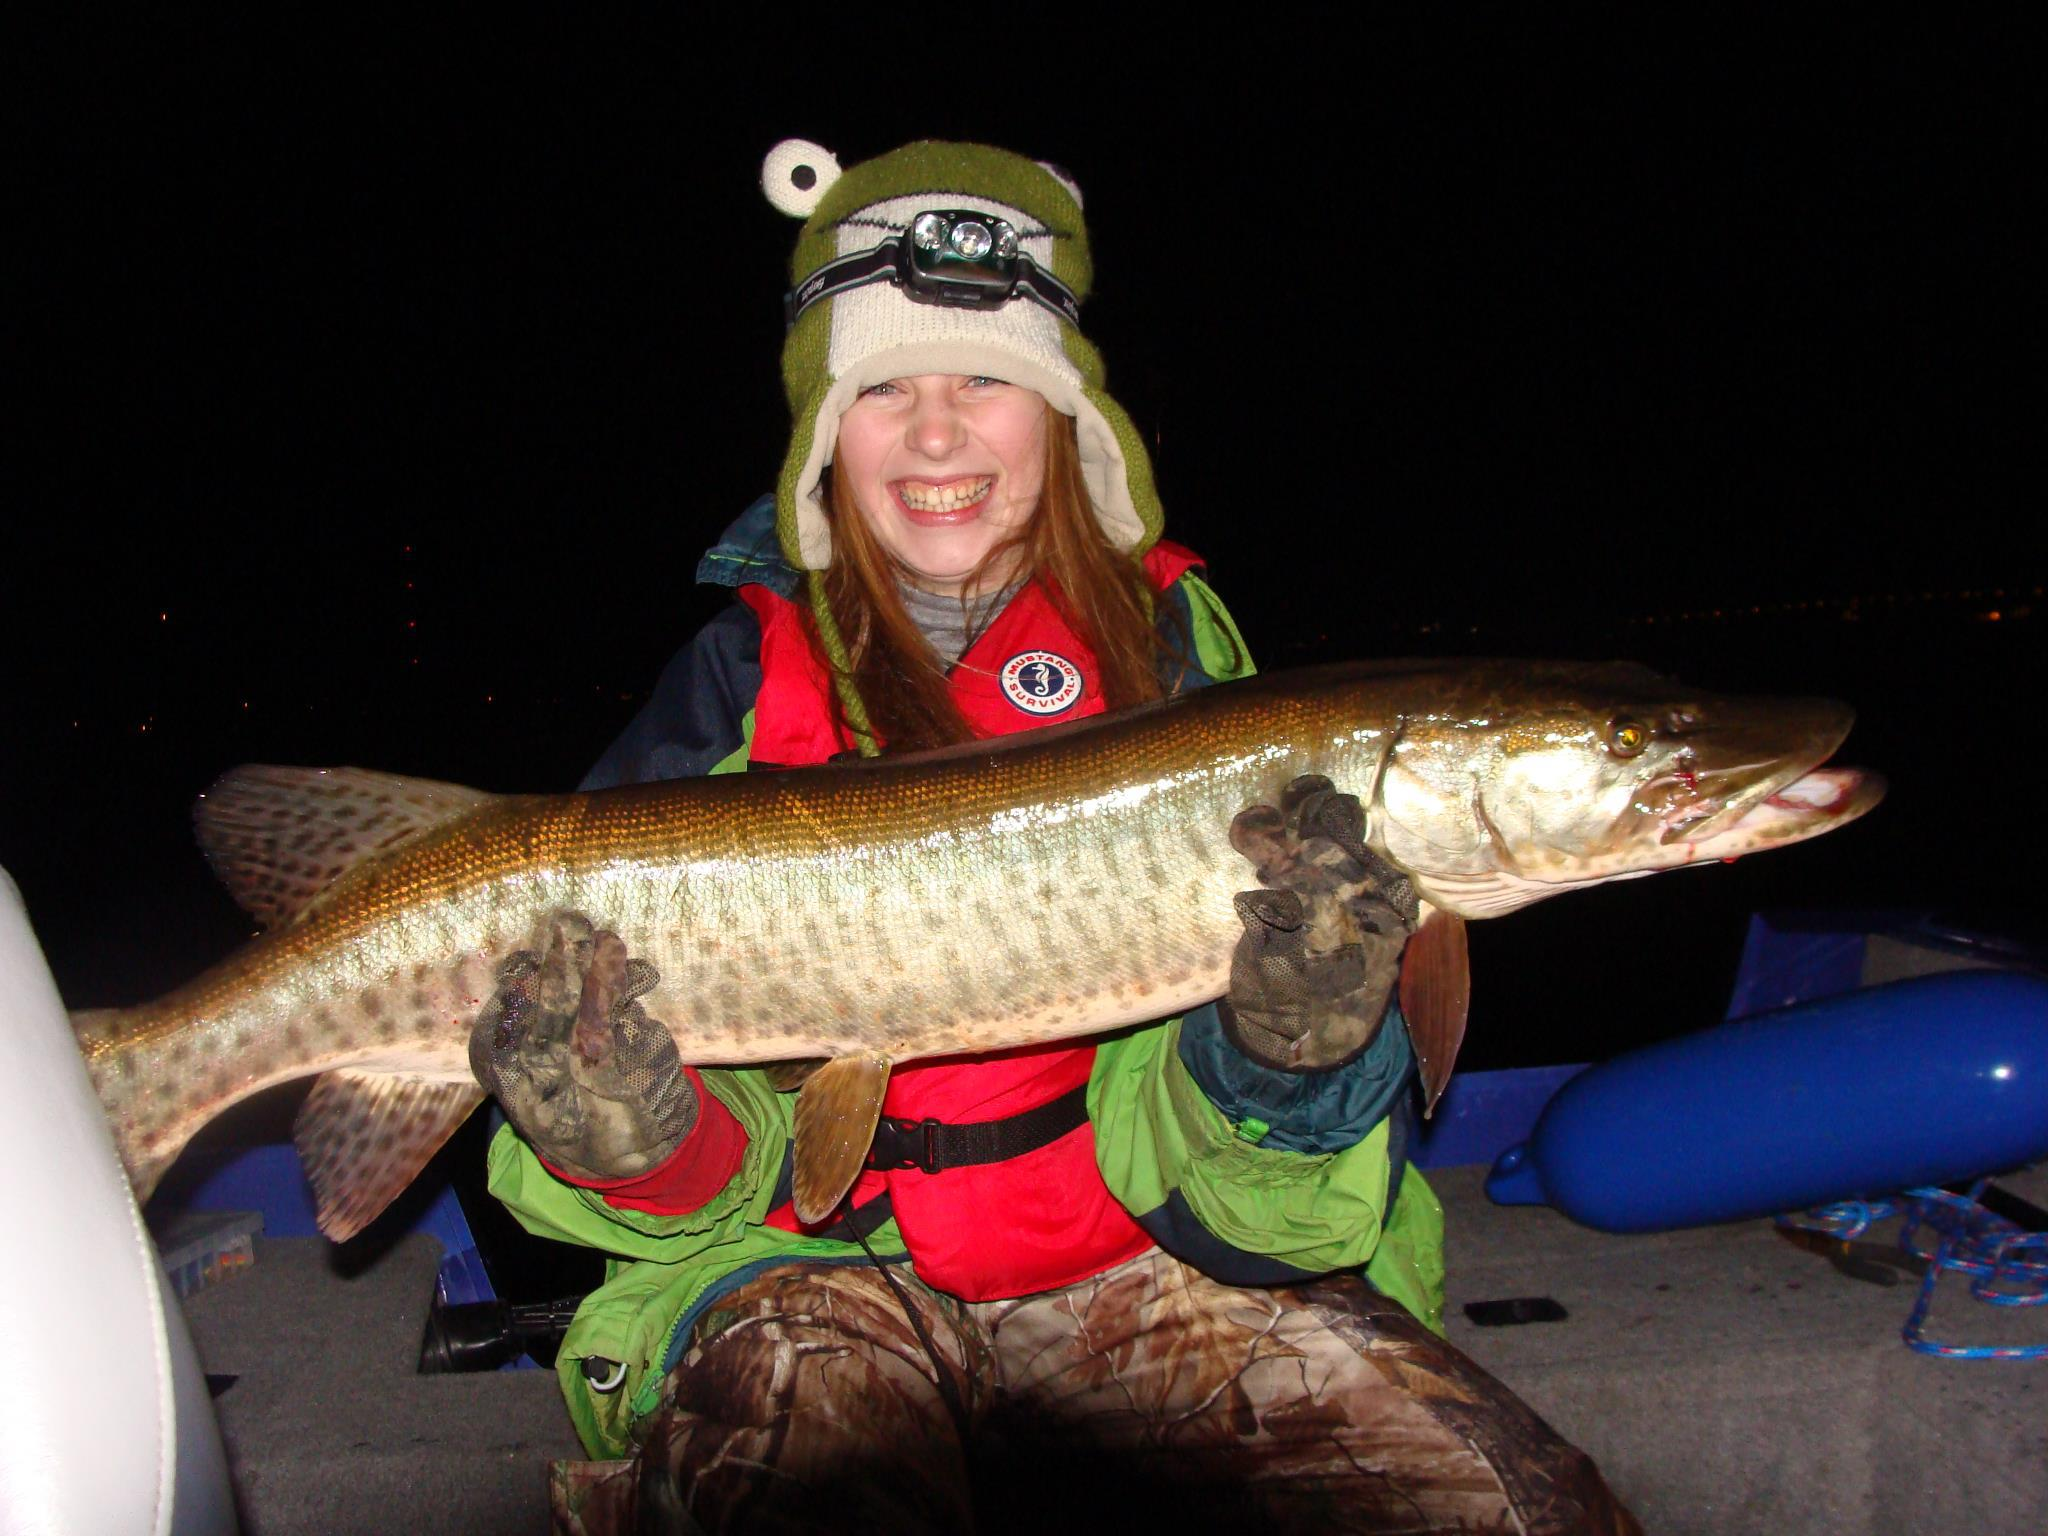 From Jeff: Check out the size of this Muskie